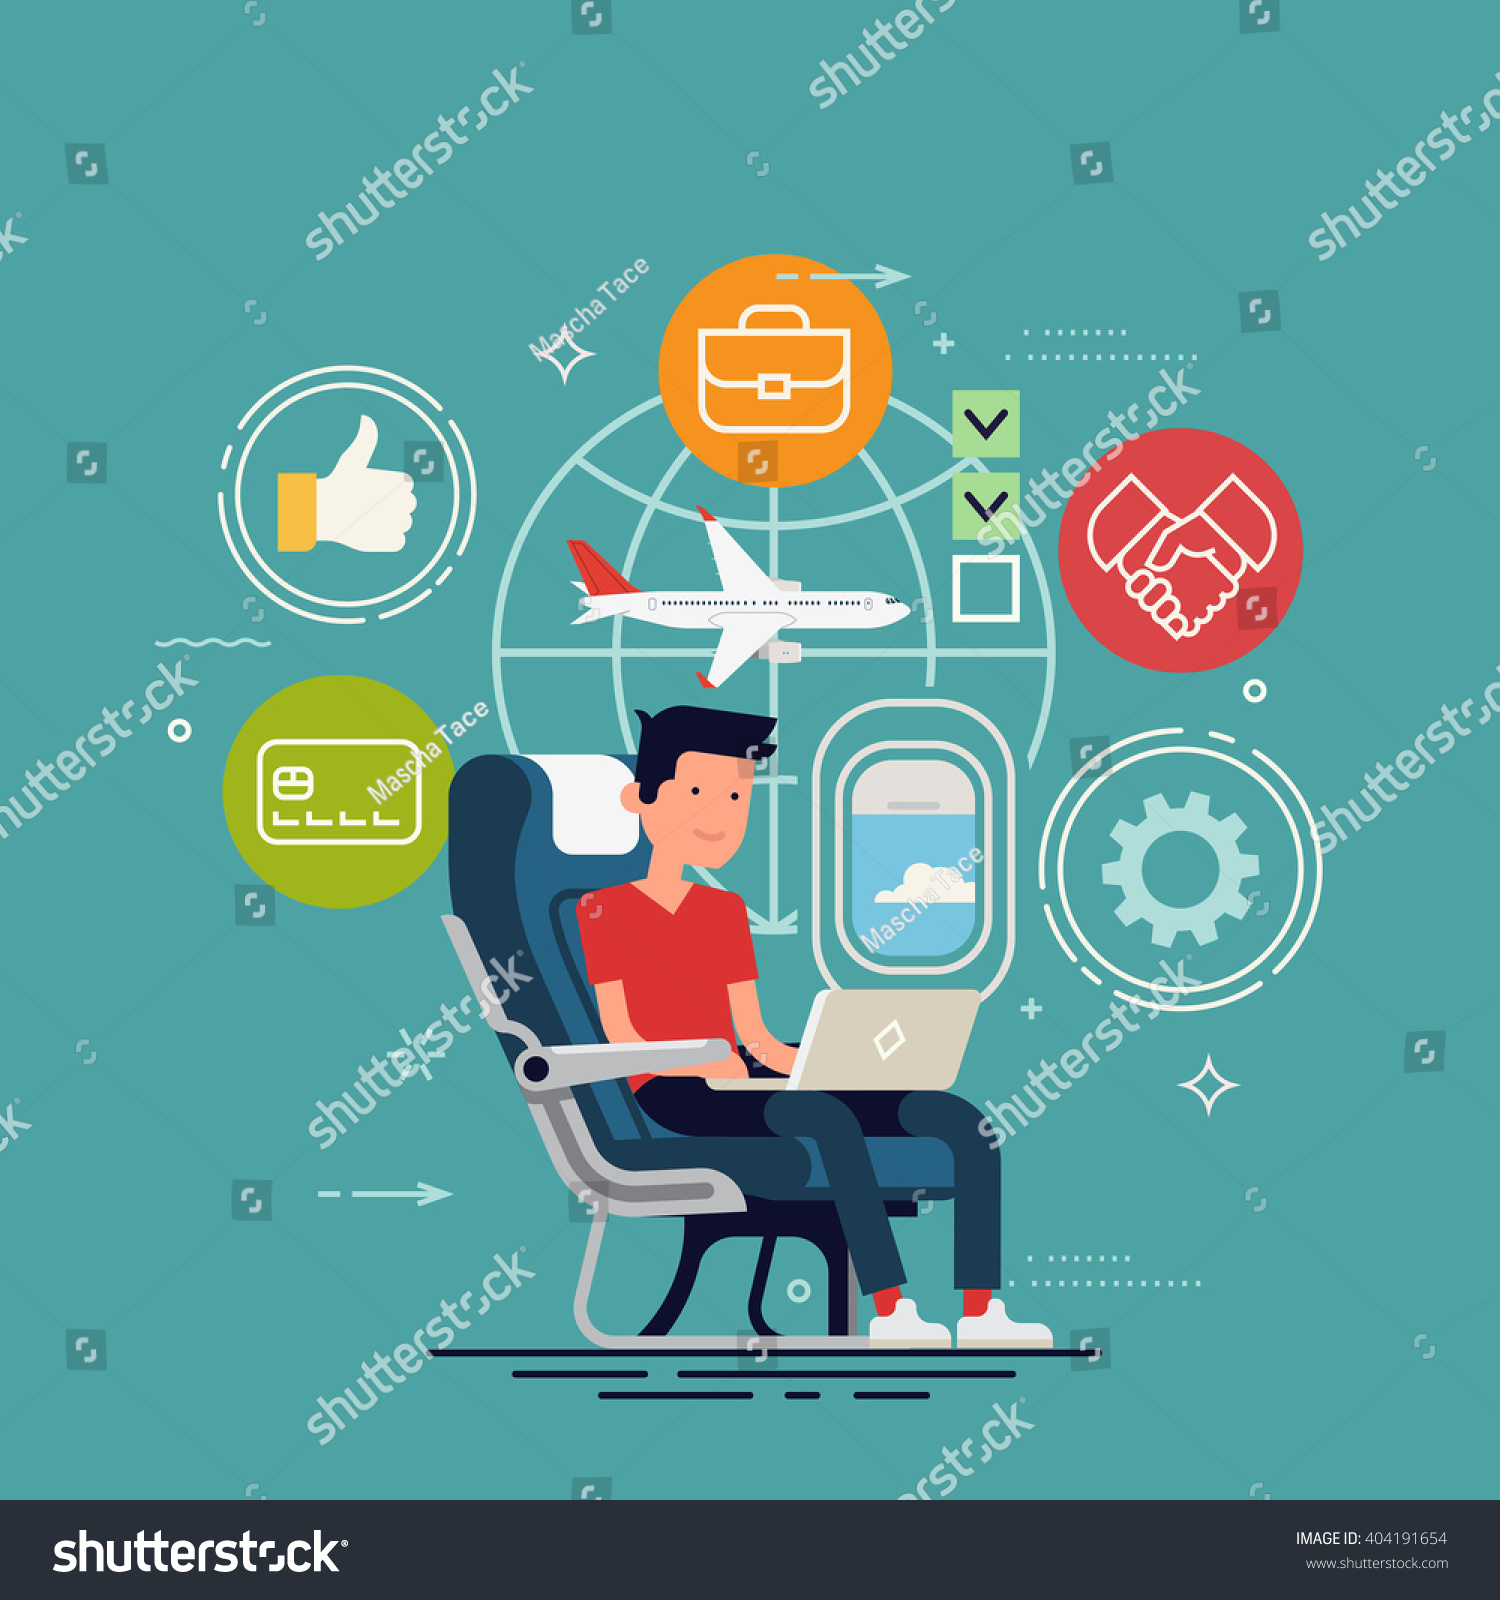 Cool Vector Concept Design On Man Working Online Using